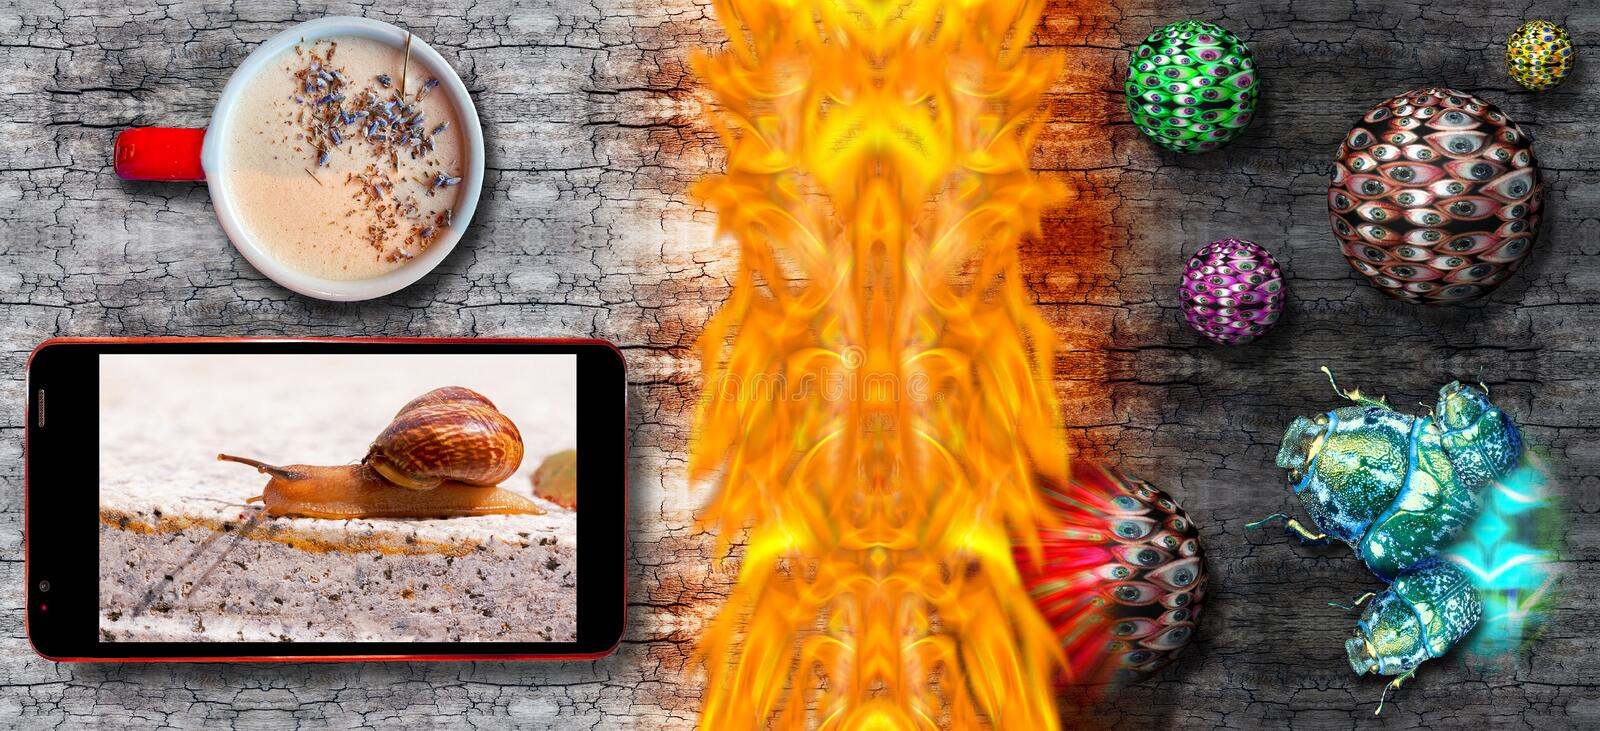 Smart phone with helix as symbol of slow Internet on screen and hot coffee mug defended by firewall from bug and viruses attack on royalty free stock photography